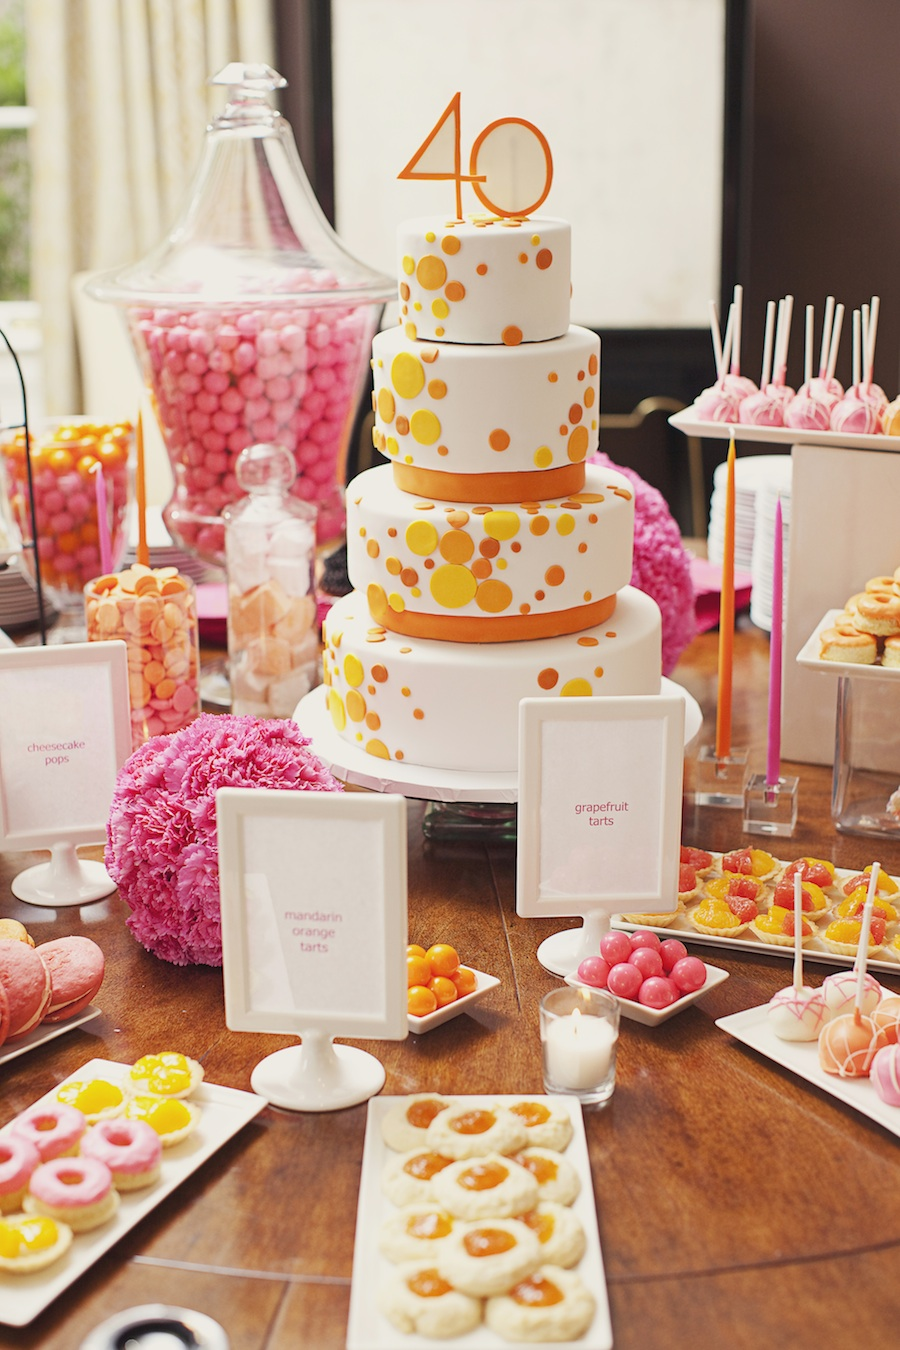 Fabulous 40th Birthday Party for Author Emily Giffin - The ...